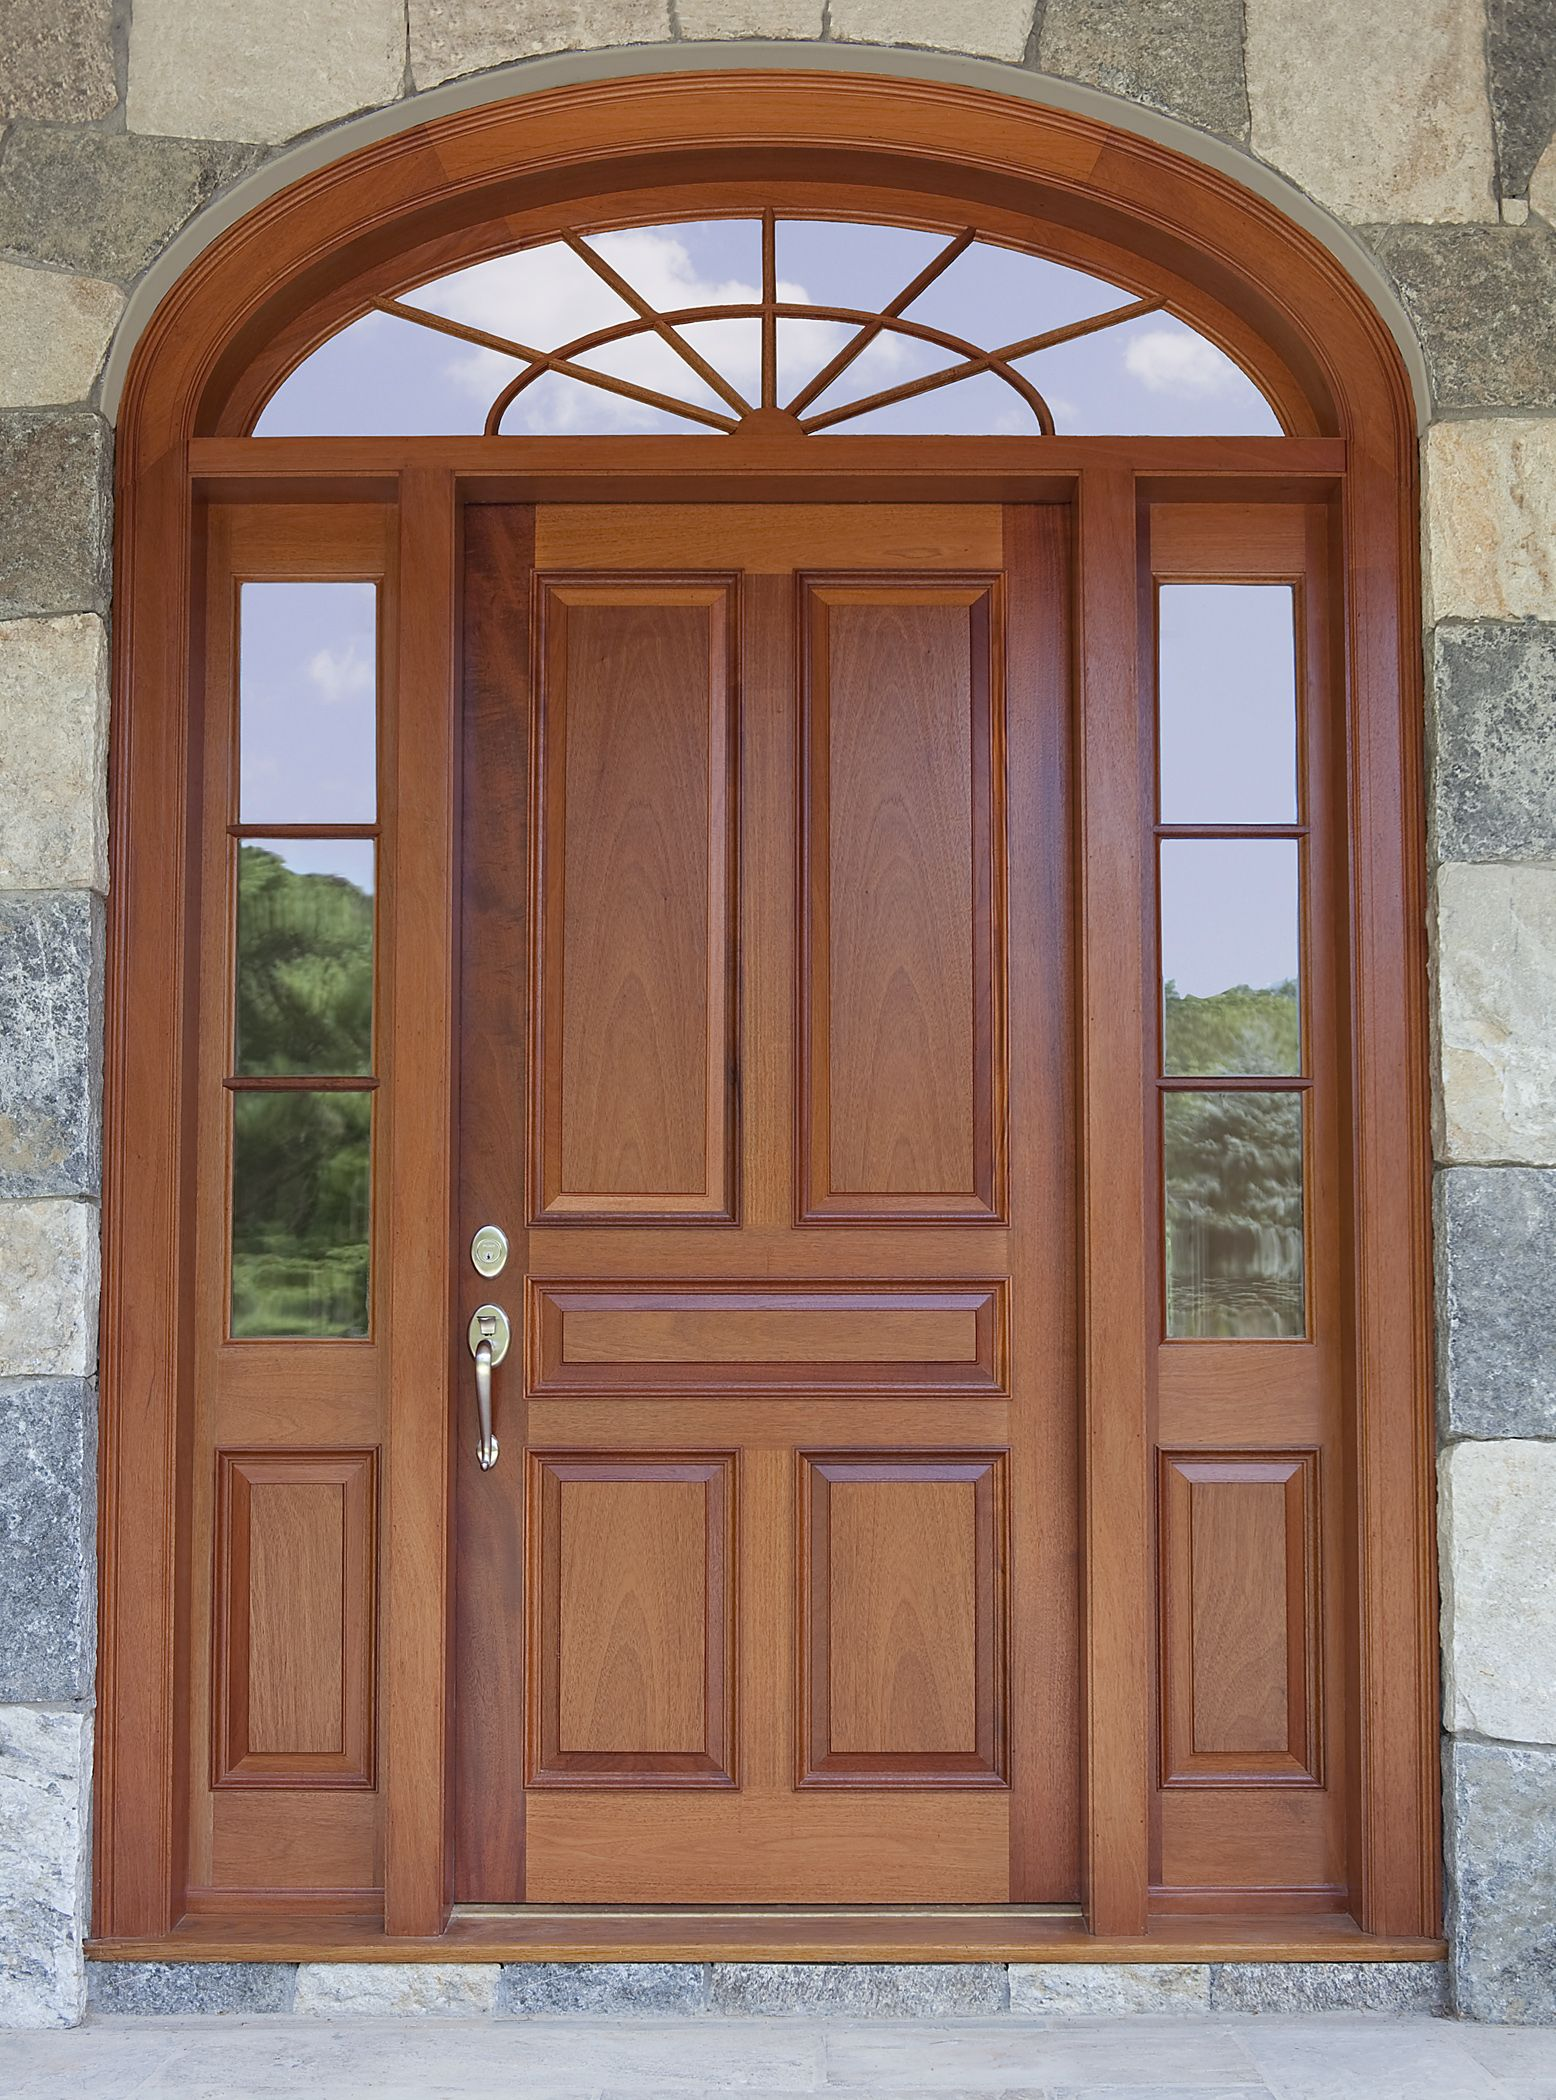 Our Upstate Doors are in line with producing destinctive and semi-customed hardwood doors with timeless styles and features. & Just one of our many custom exterior doors - you imagine it we ... pezcame.com